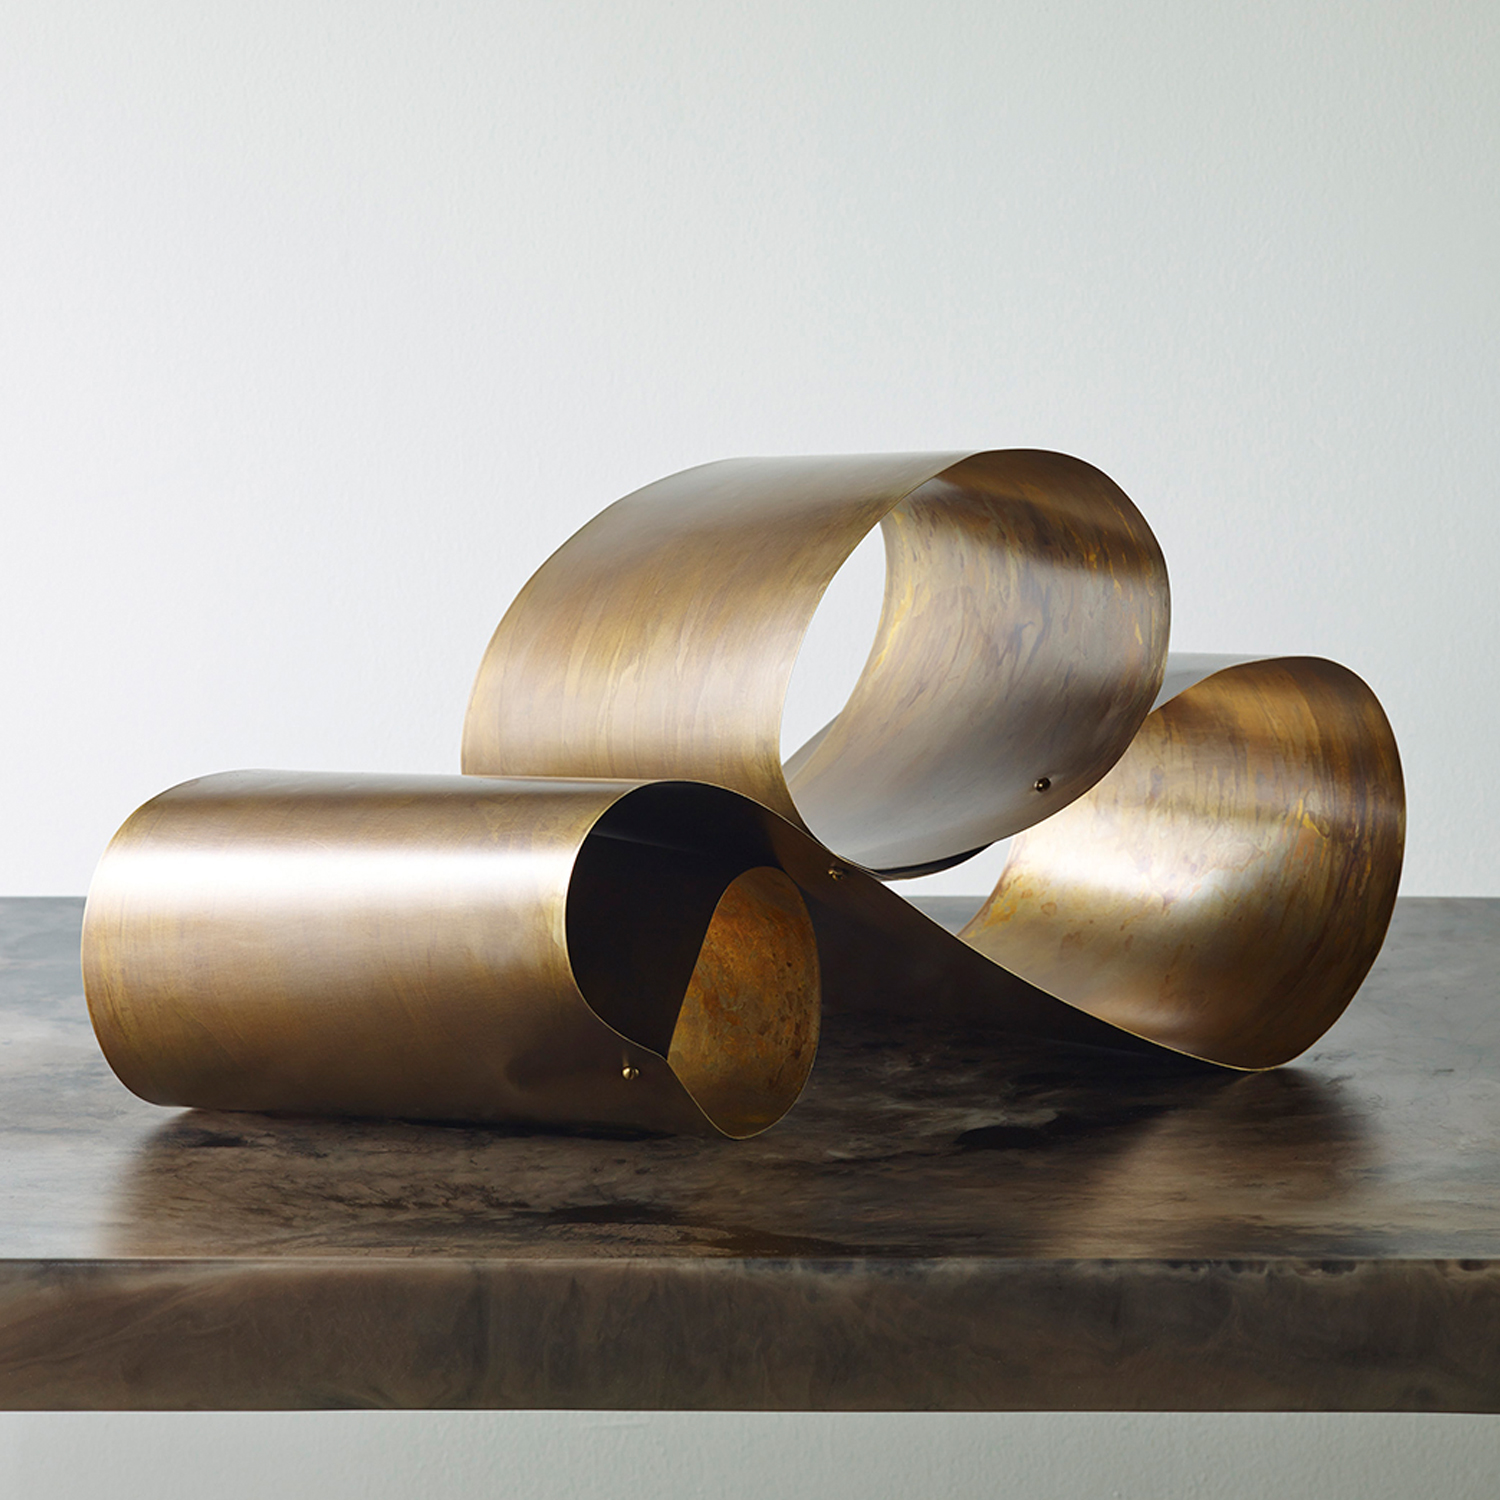 Crunch #23